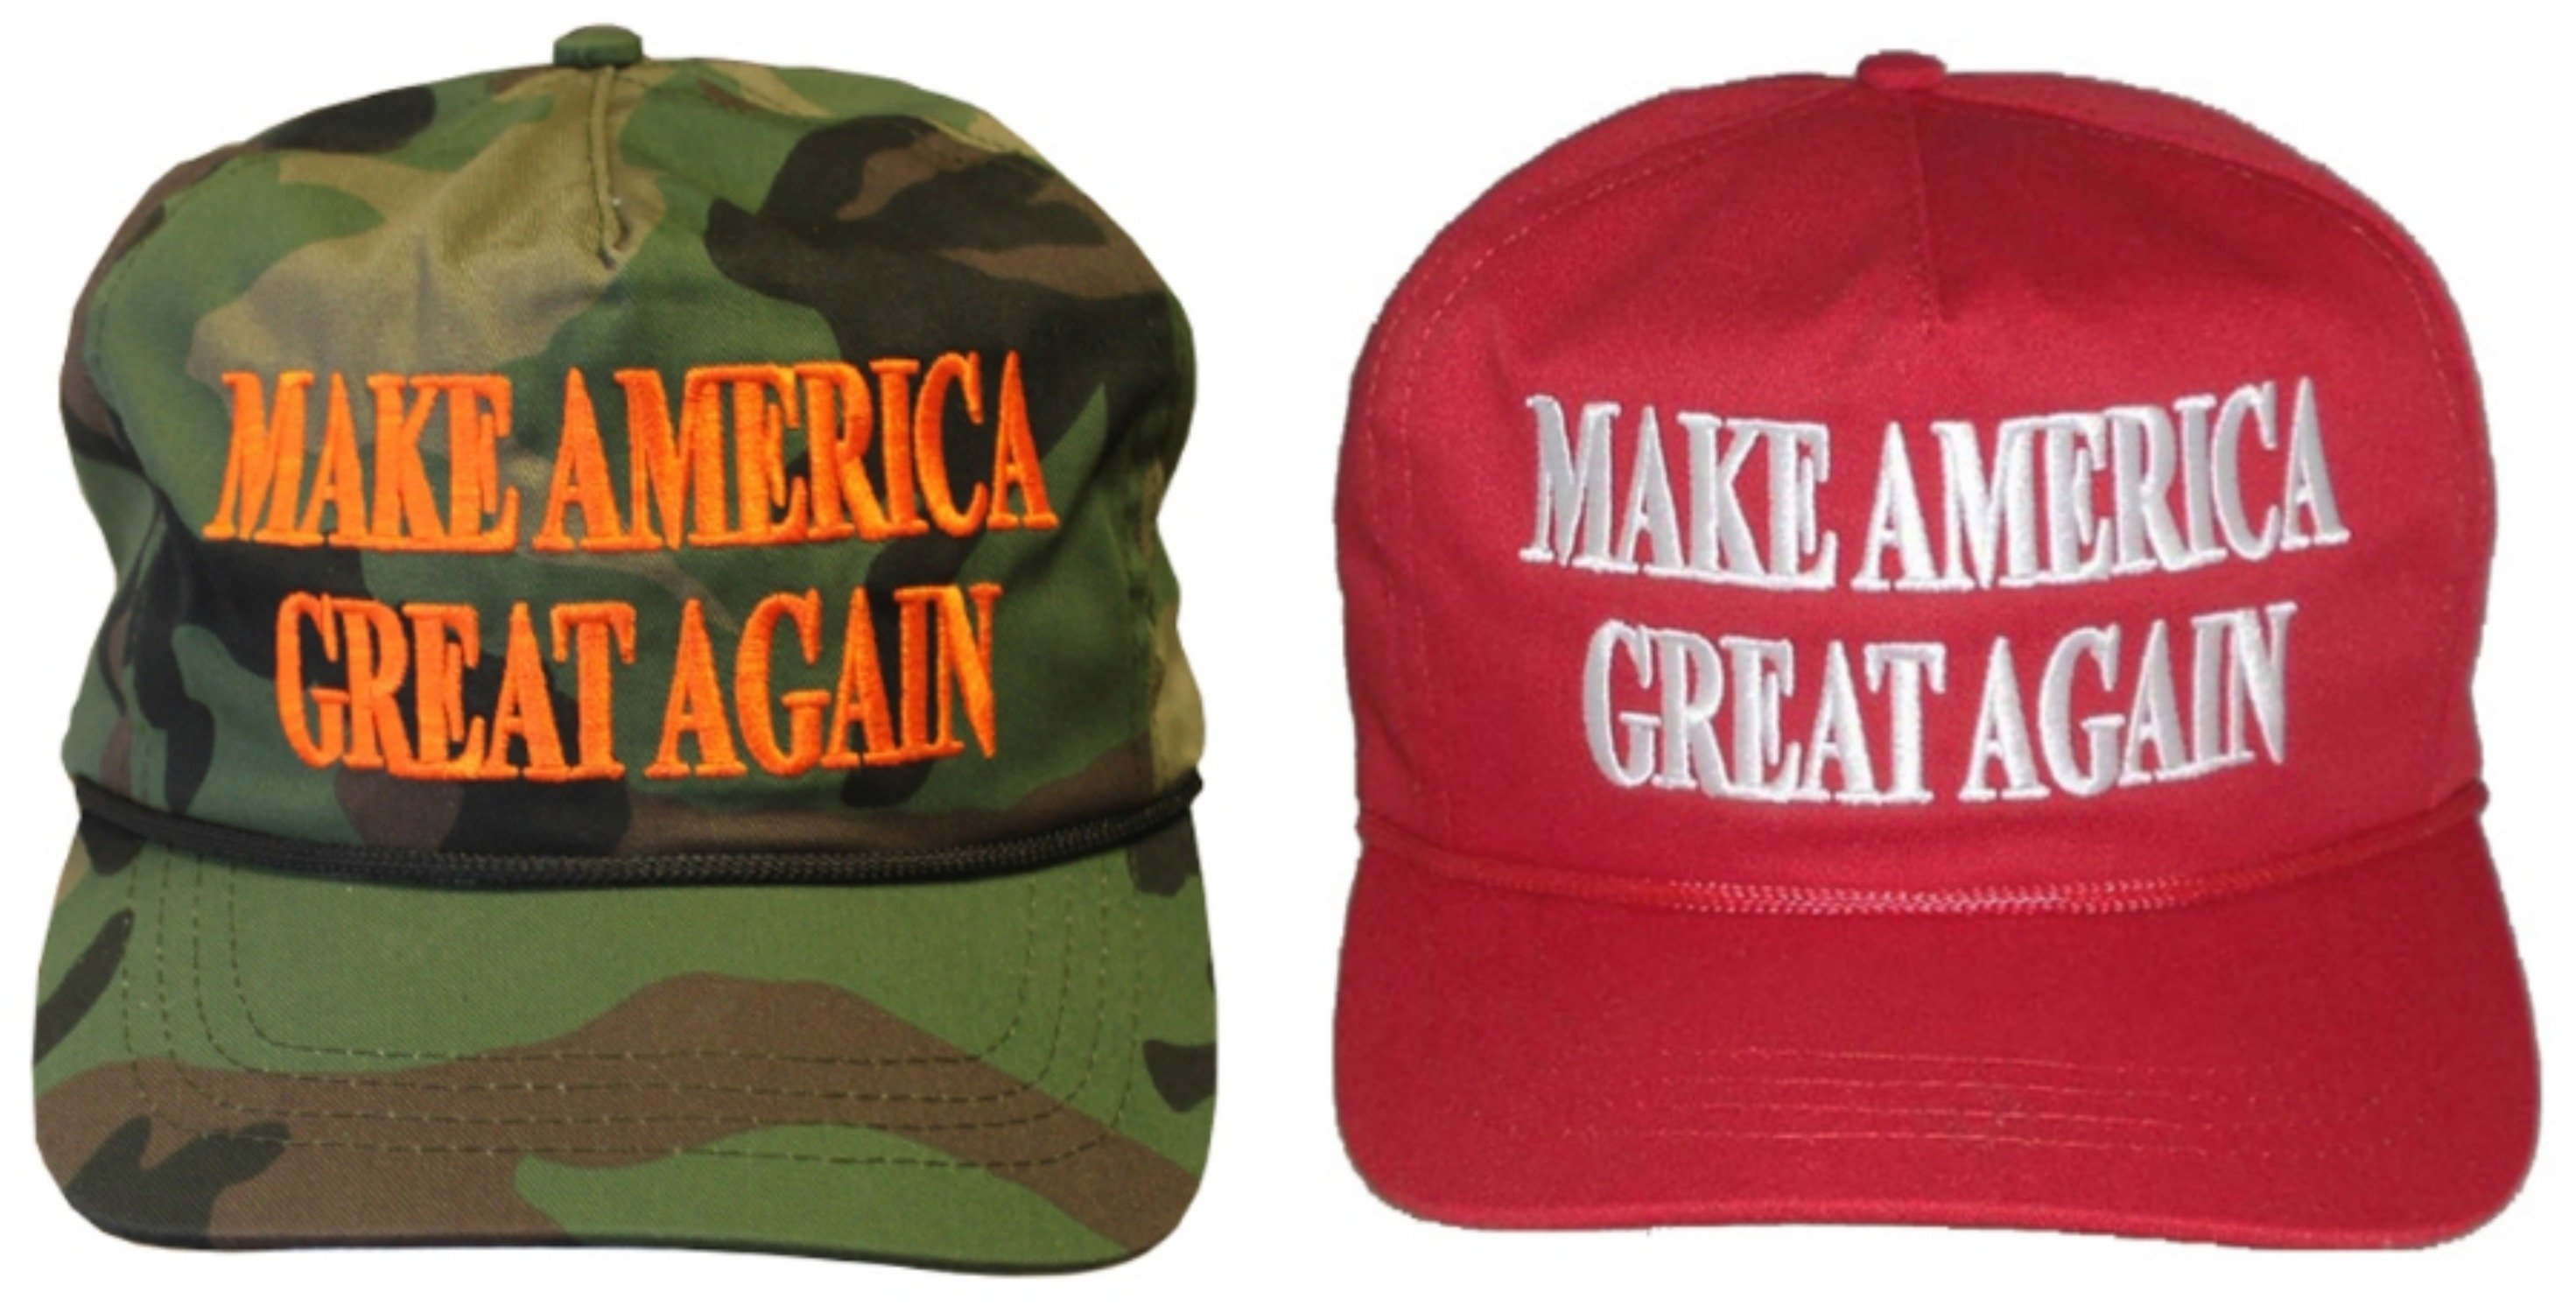 Trumpu2019s accessories begin and end with the hats, which range from $ ...